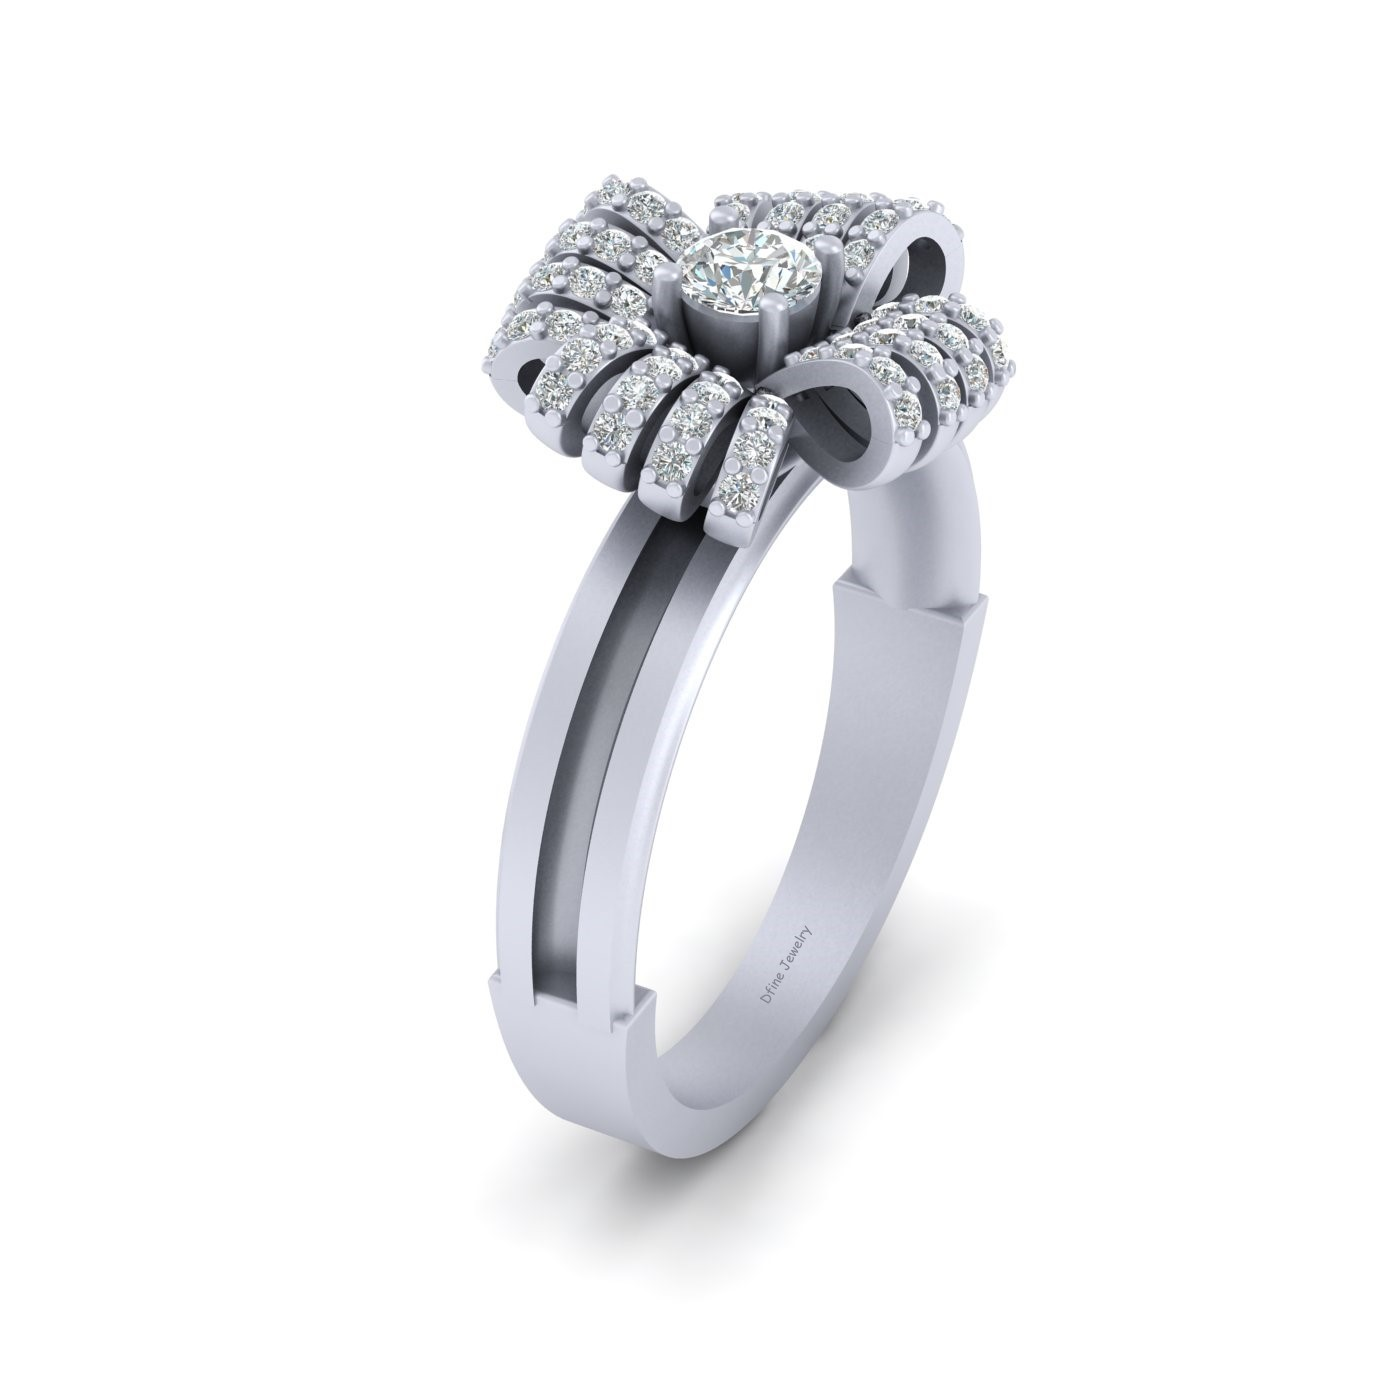 Ribbon Bow Ring In Solid 14k White Gold Diamond Bow Knot Ring For Womens Jewelry - $959.99